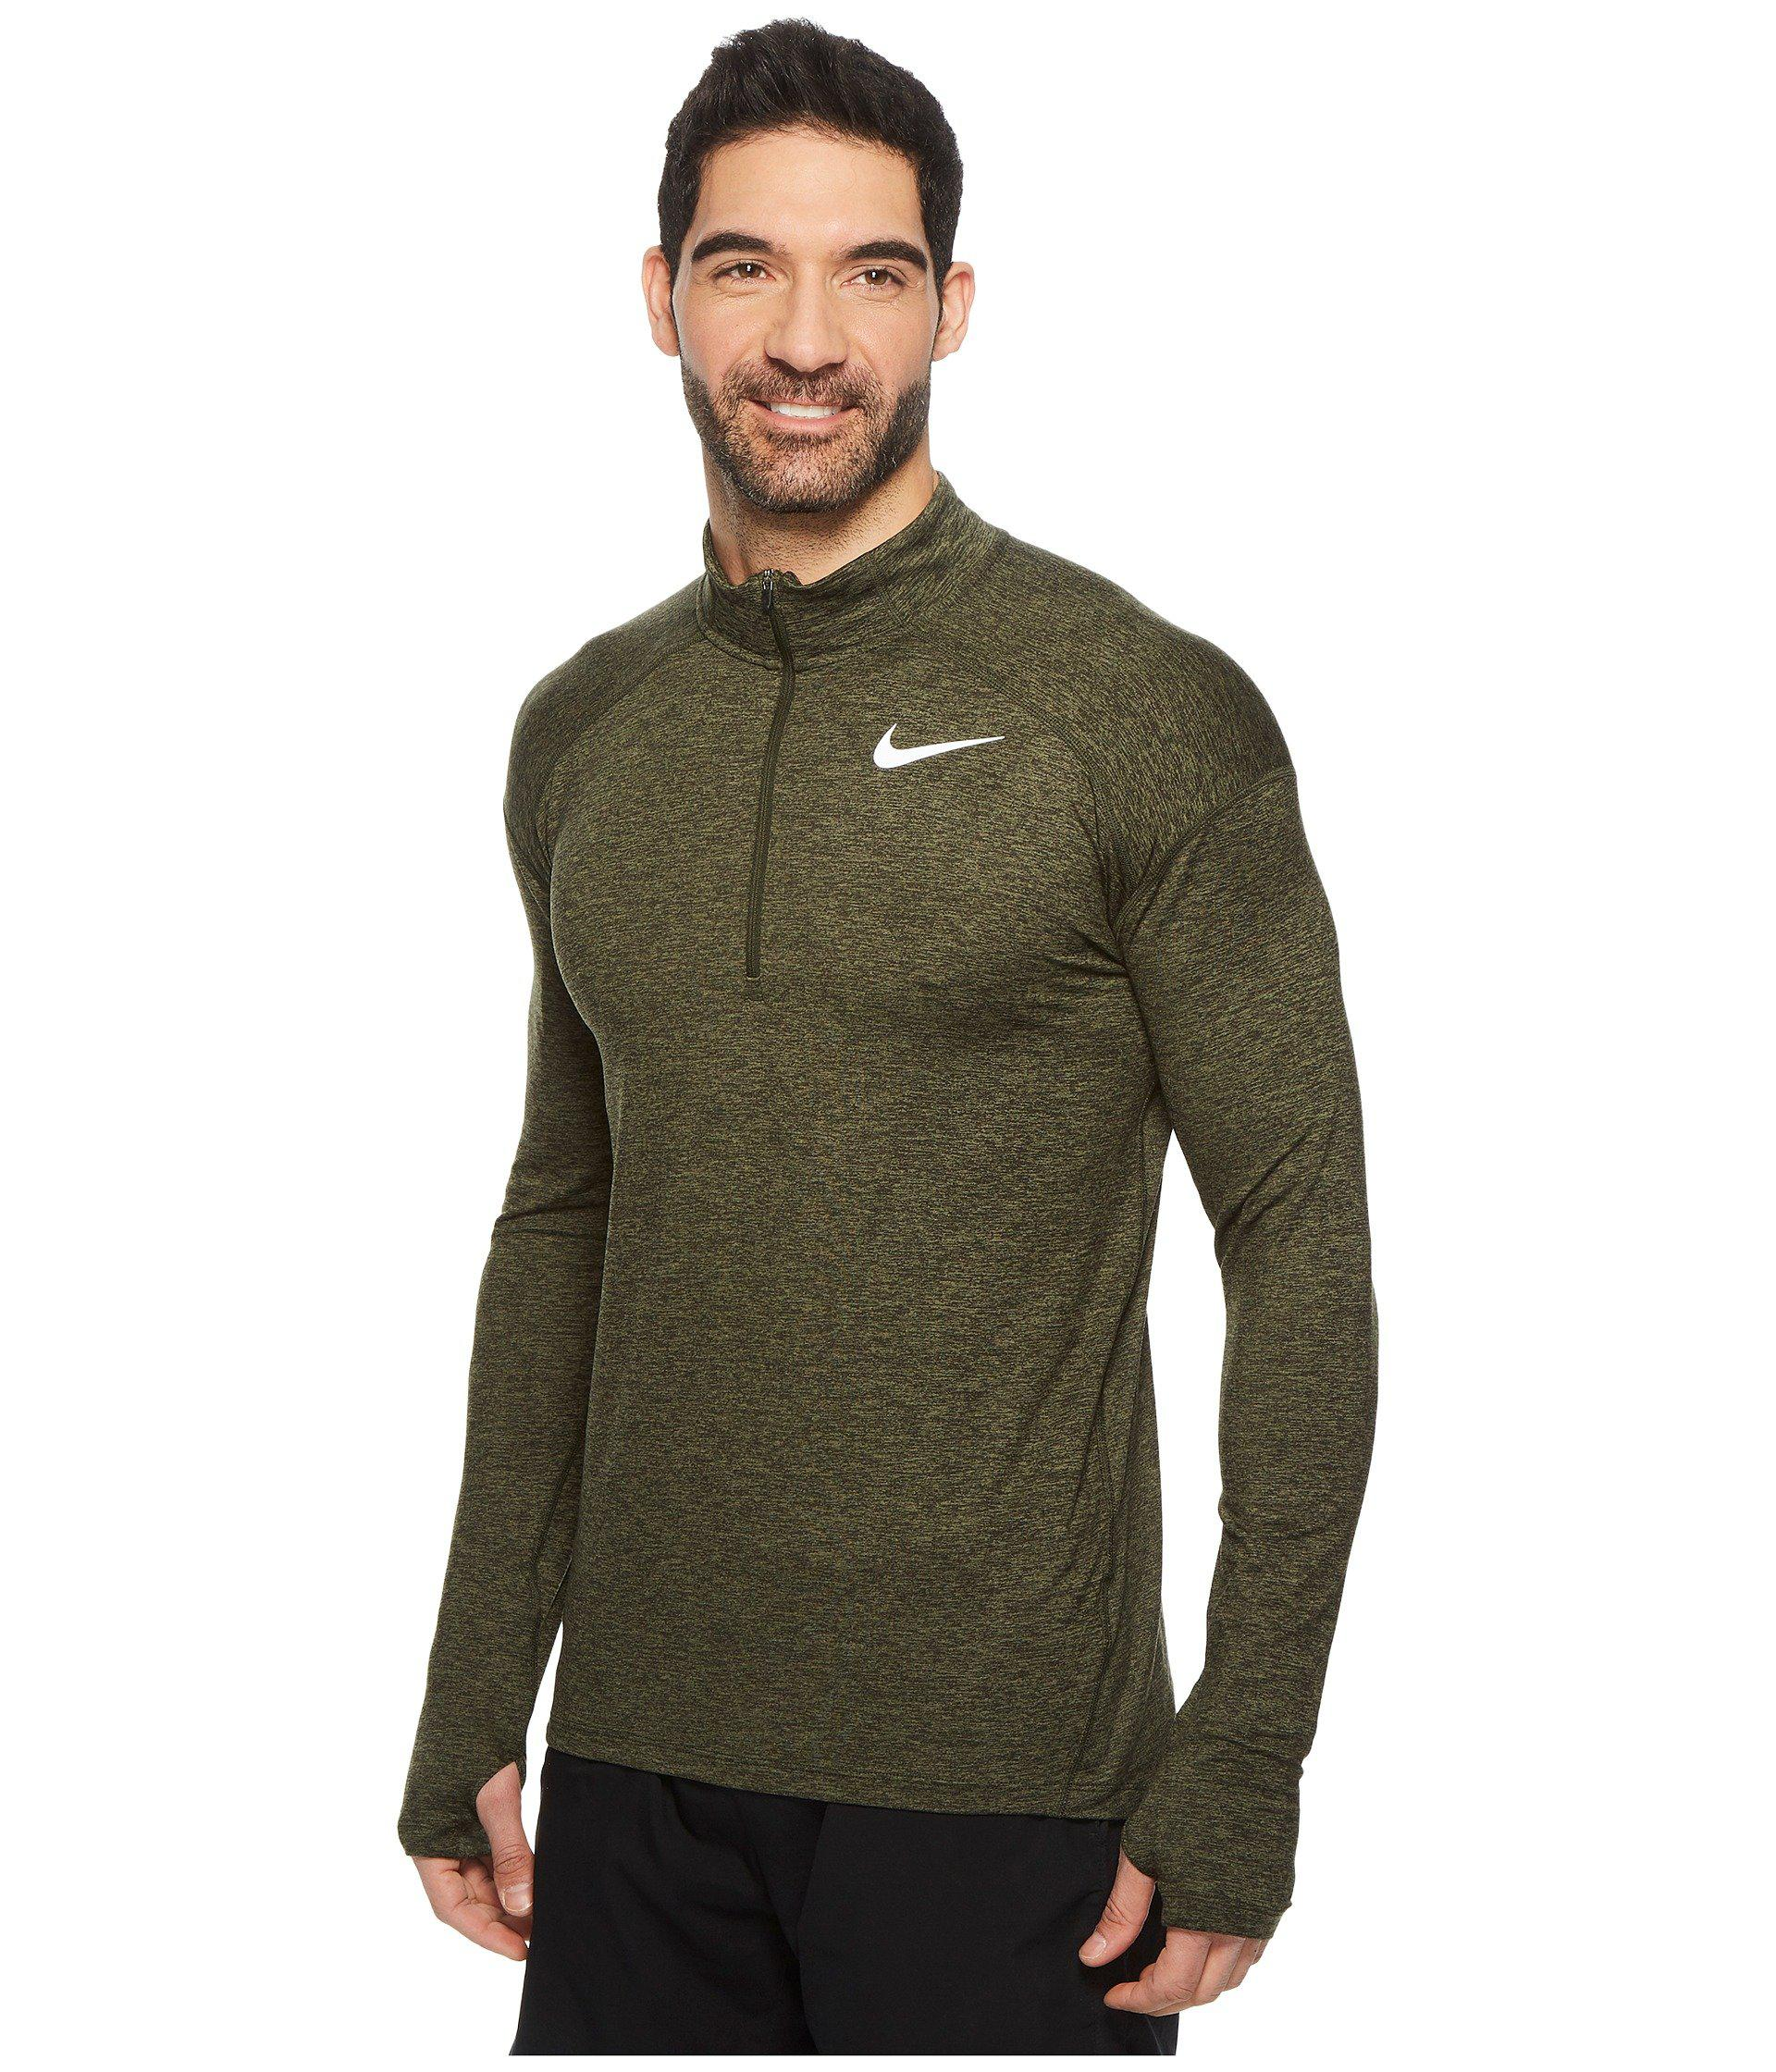 57564022f6163 Nike - Green Dry Element 1 2 Zip Running Top for Men - Lyst. View fullscreen